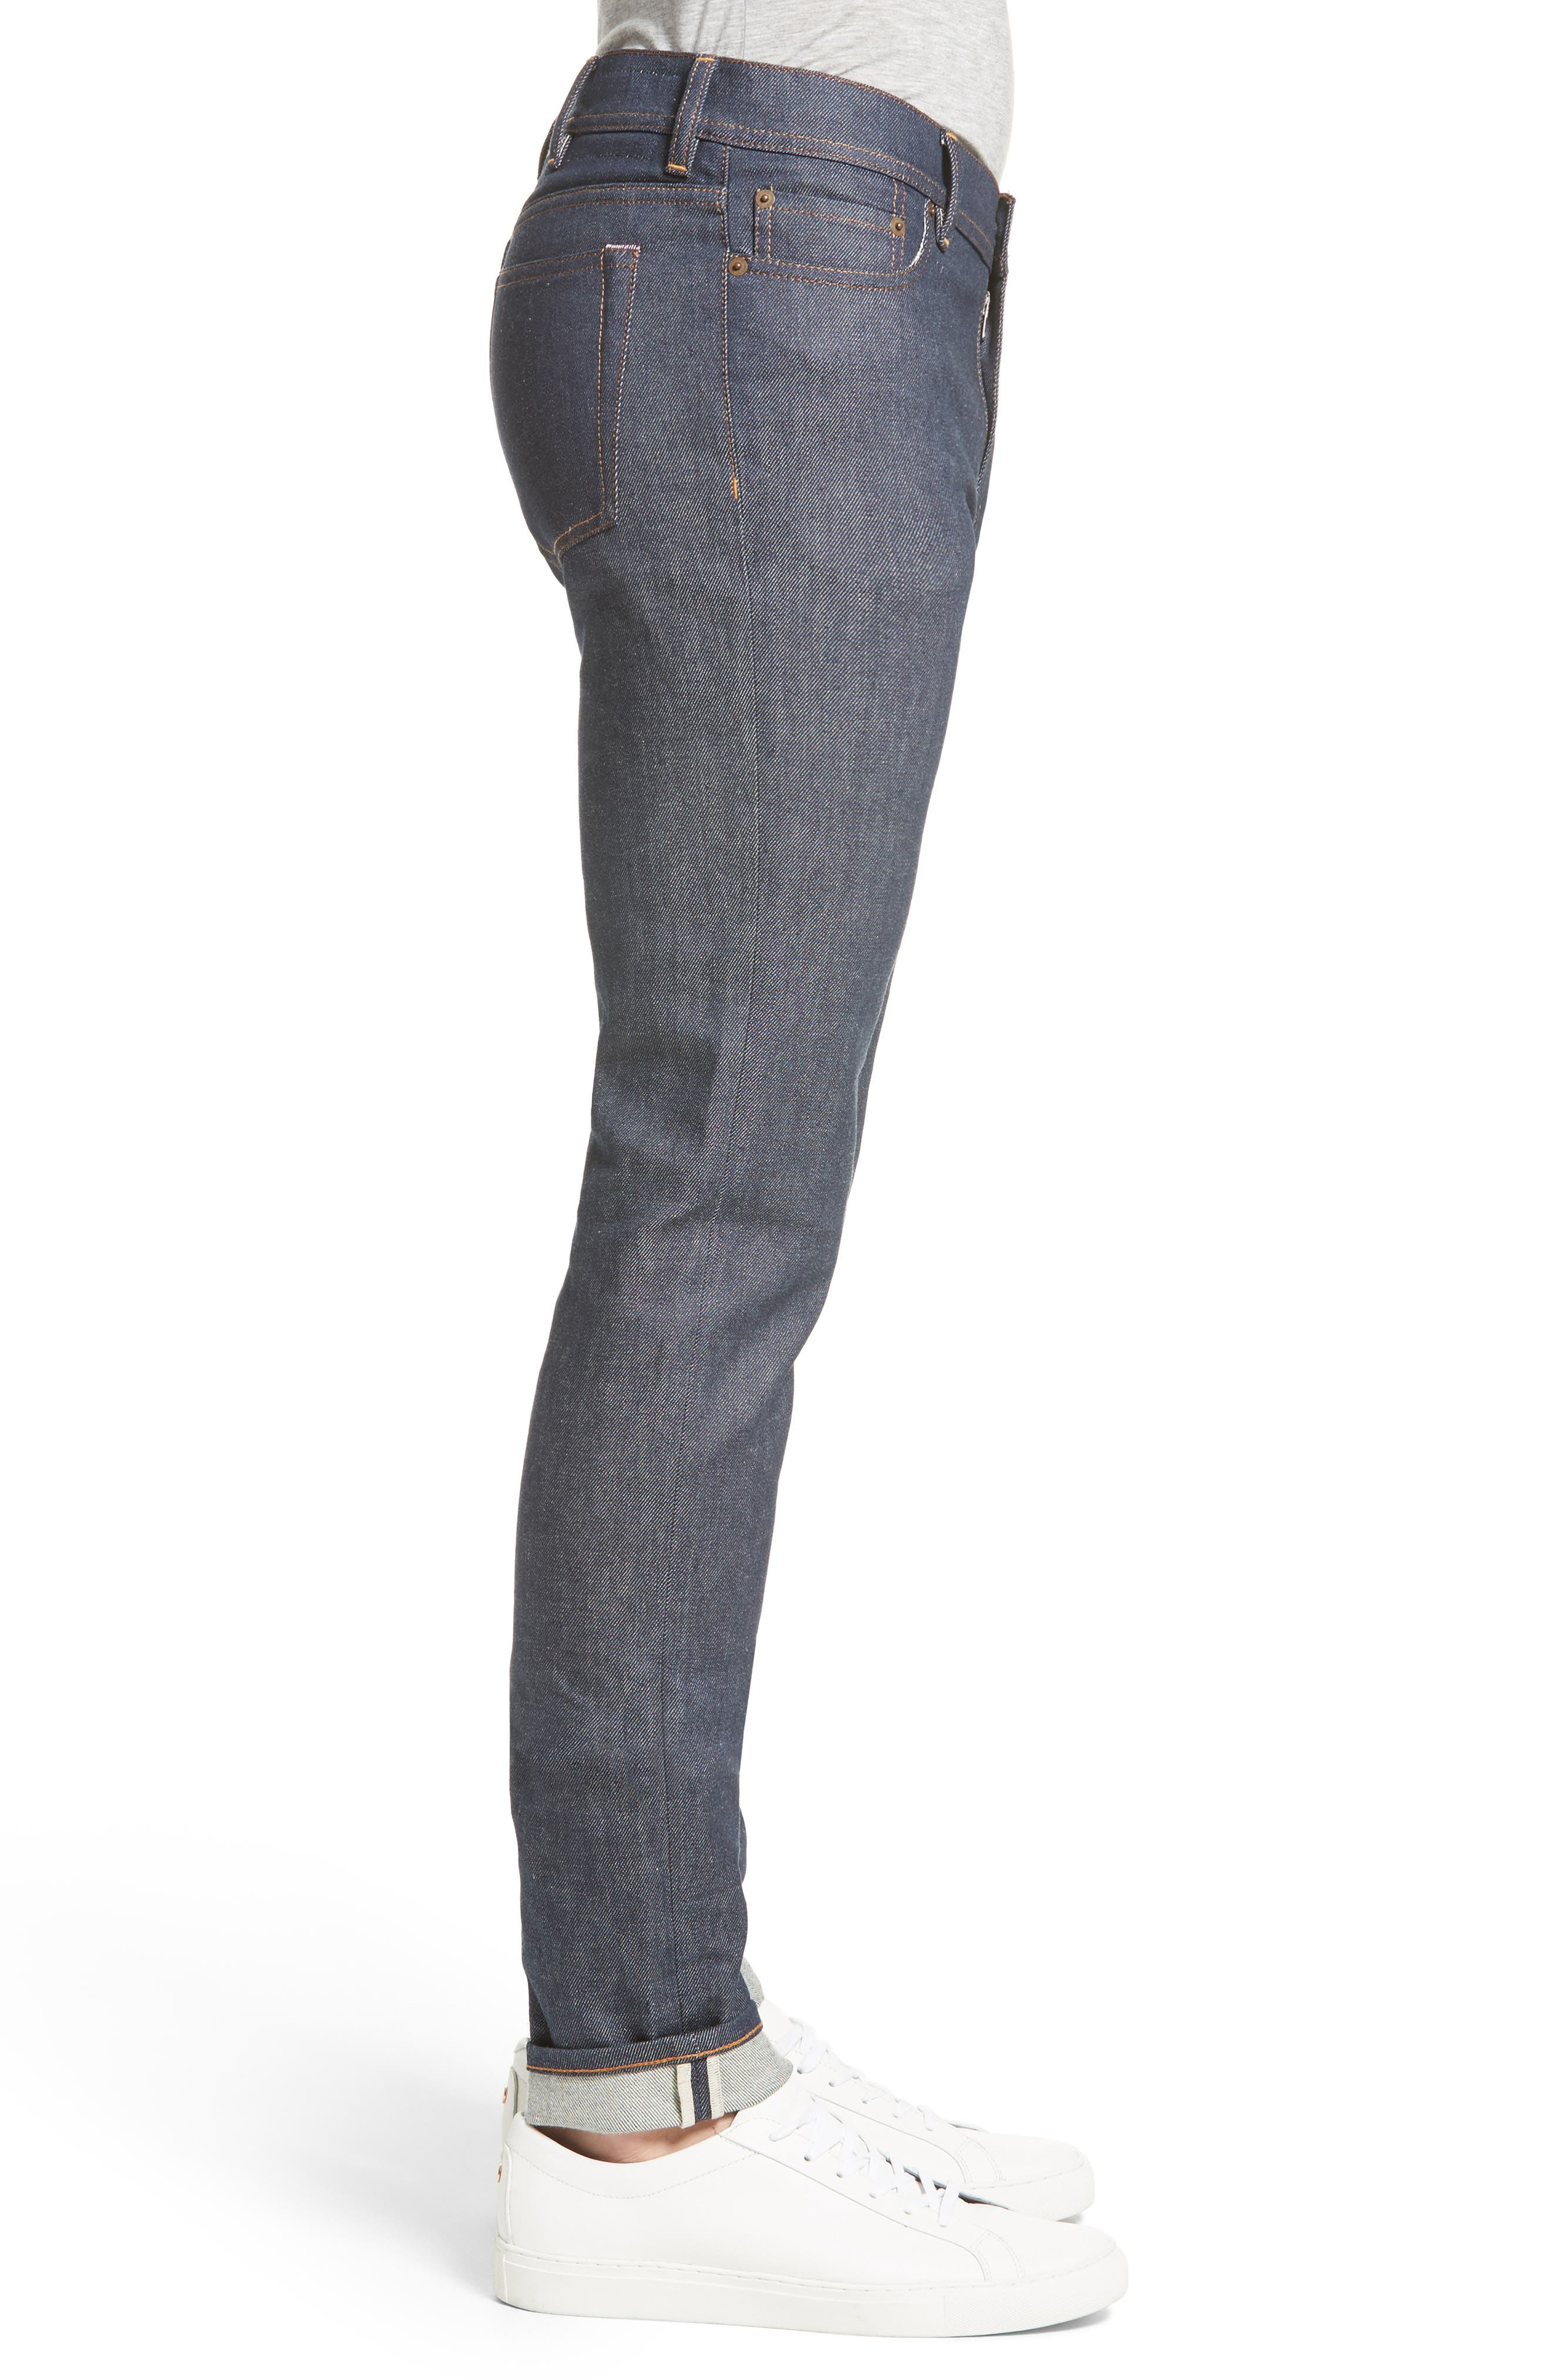 North Skinny Jeans,                             Alternate thumbnail 3, color,                             Indigo